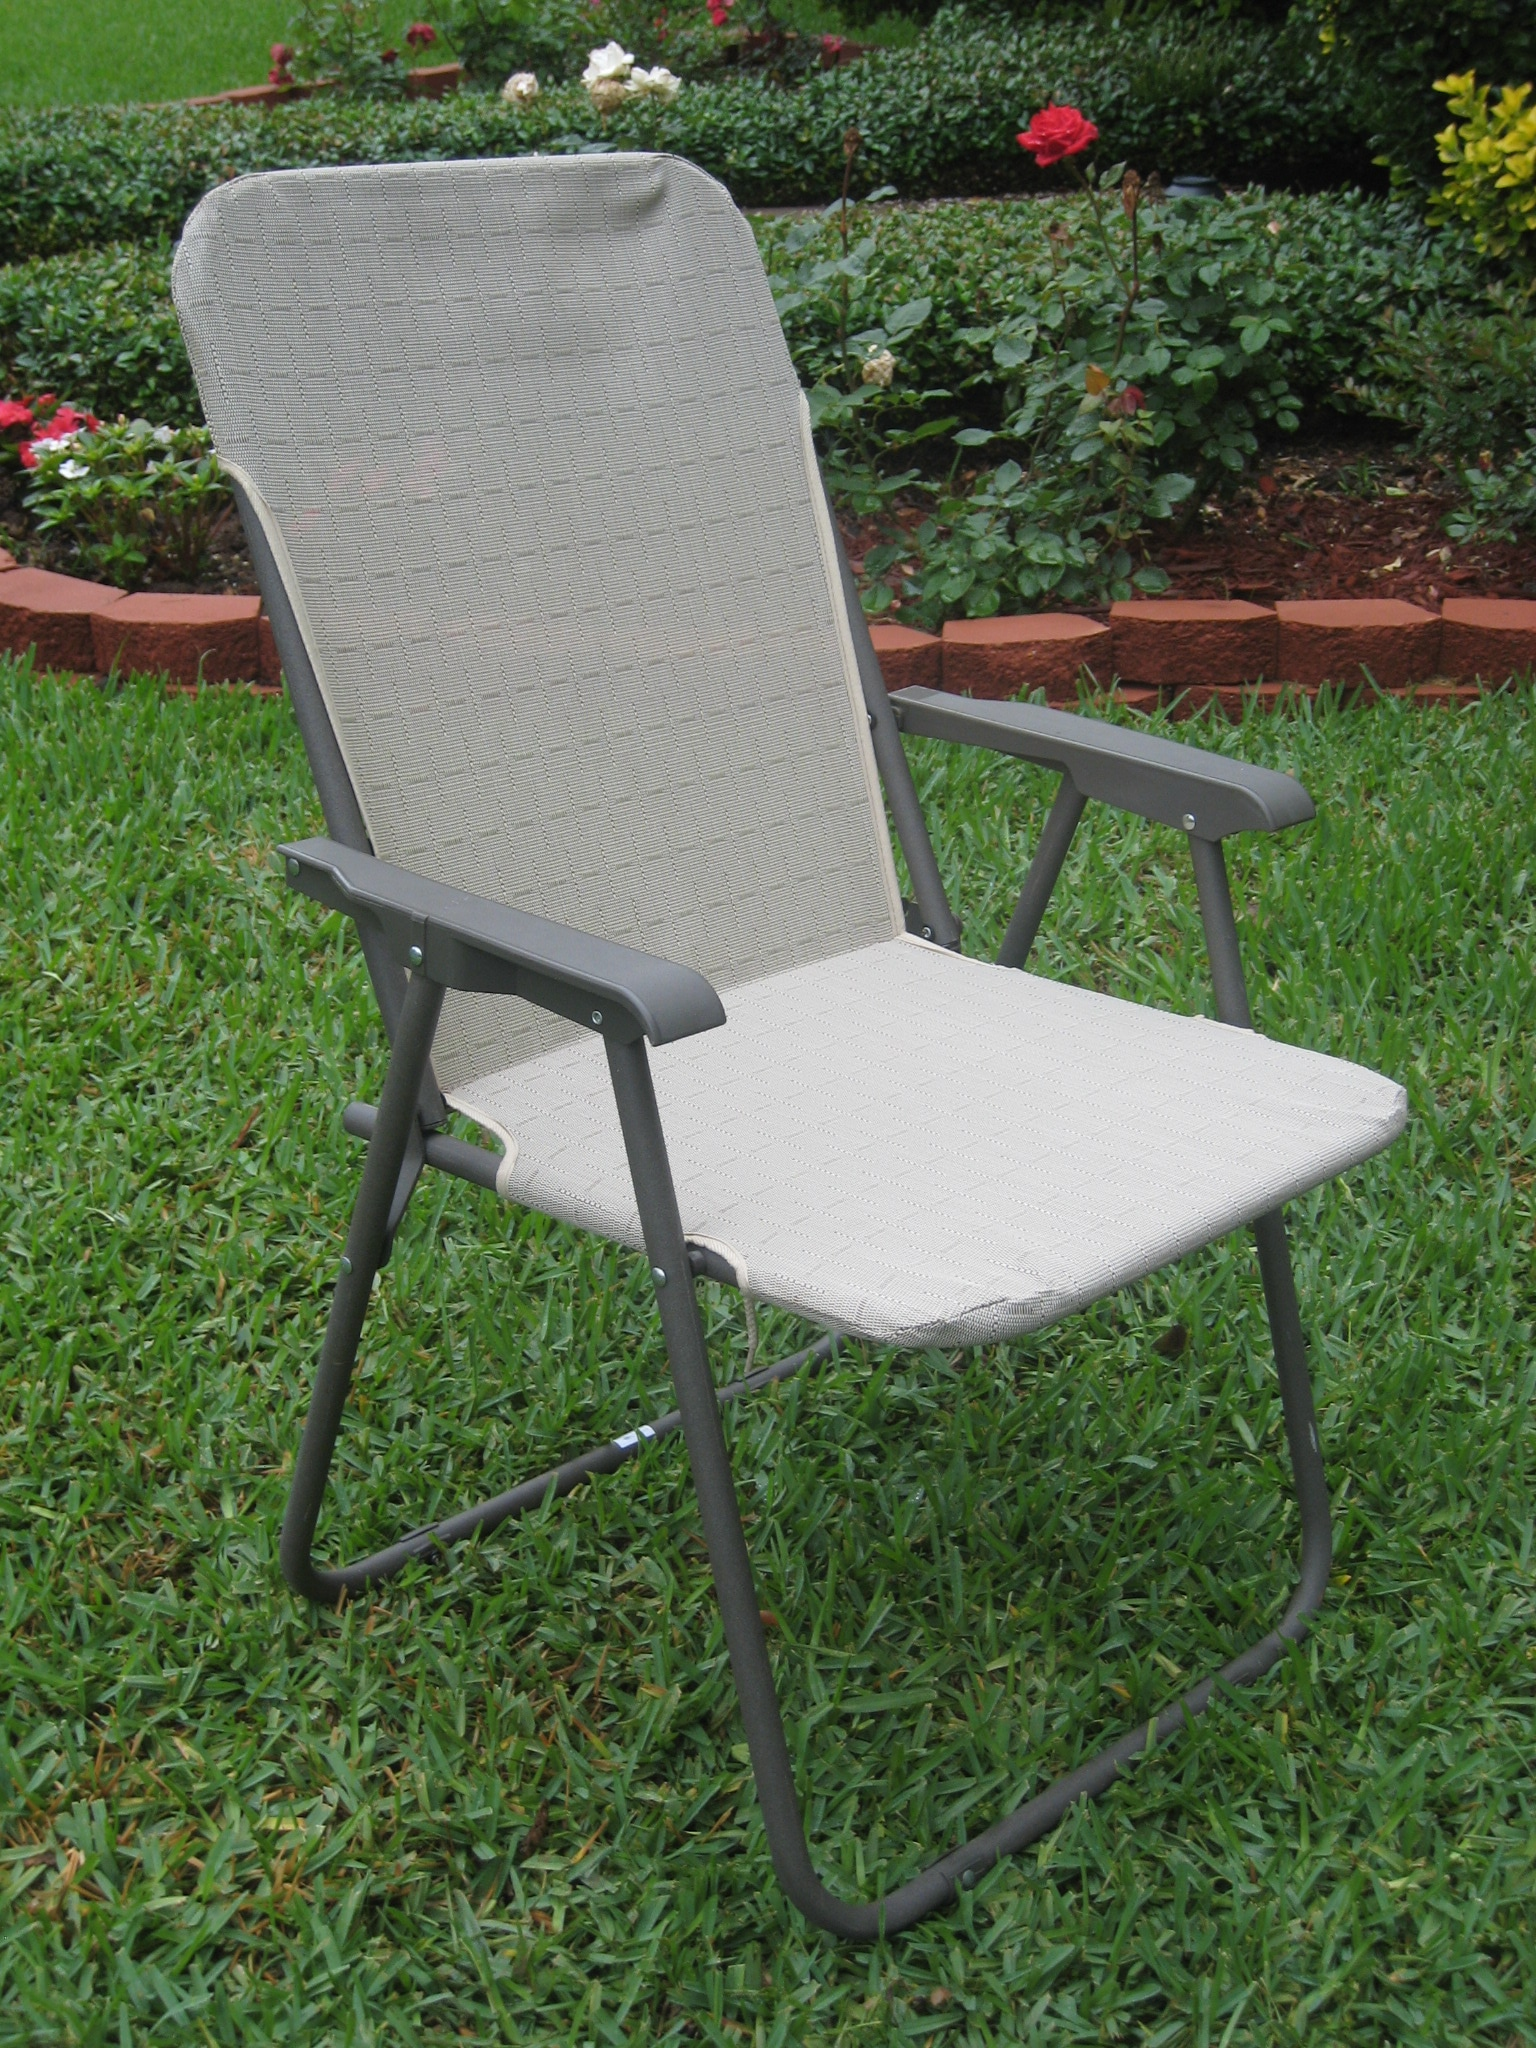 'Victory Garden' Textweave Folding Outdoor Chairs (Set of 2)